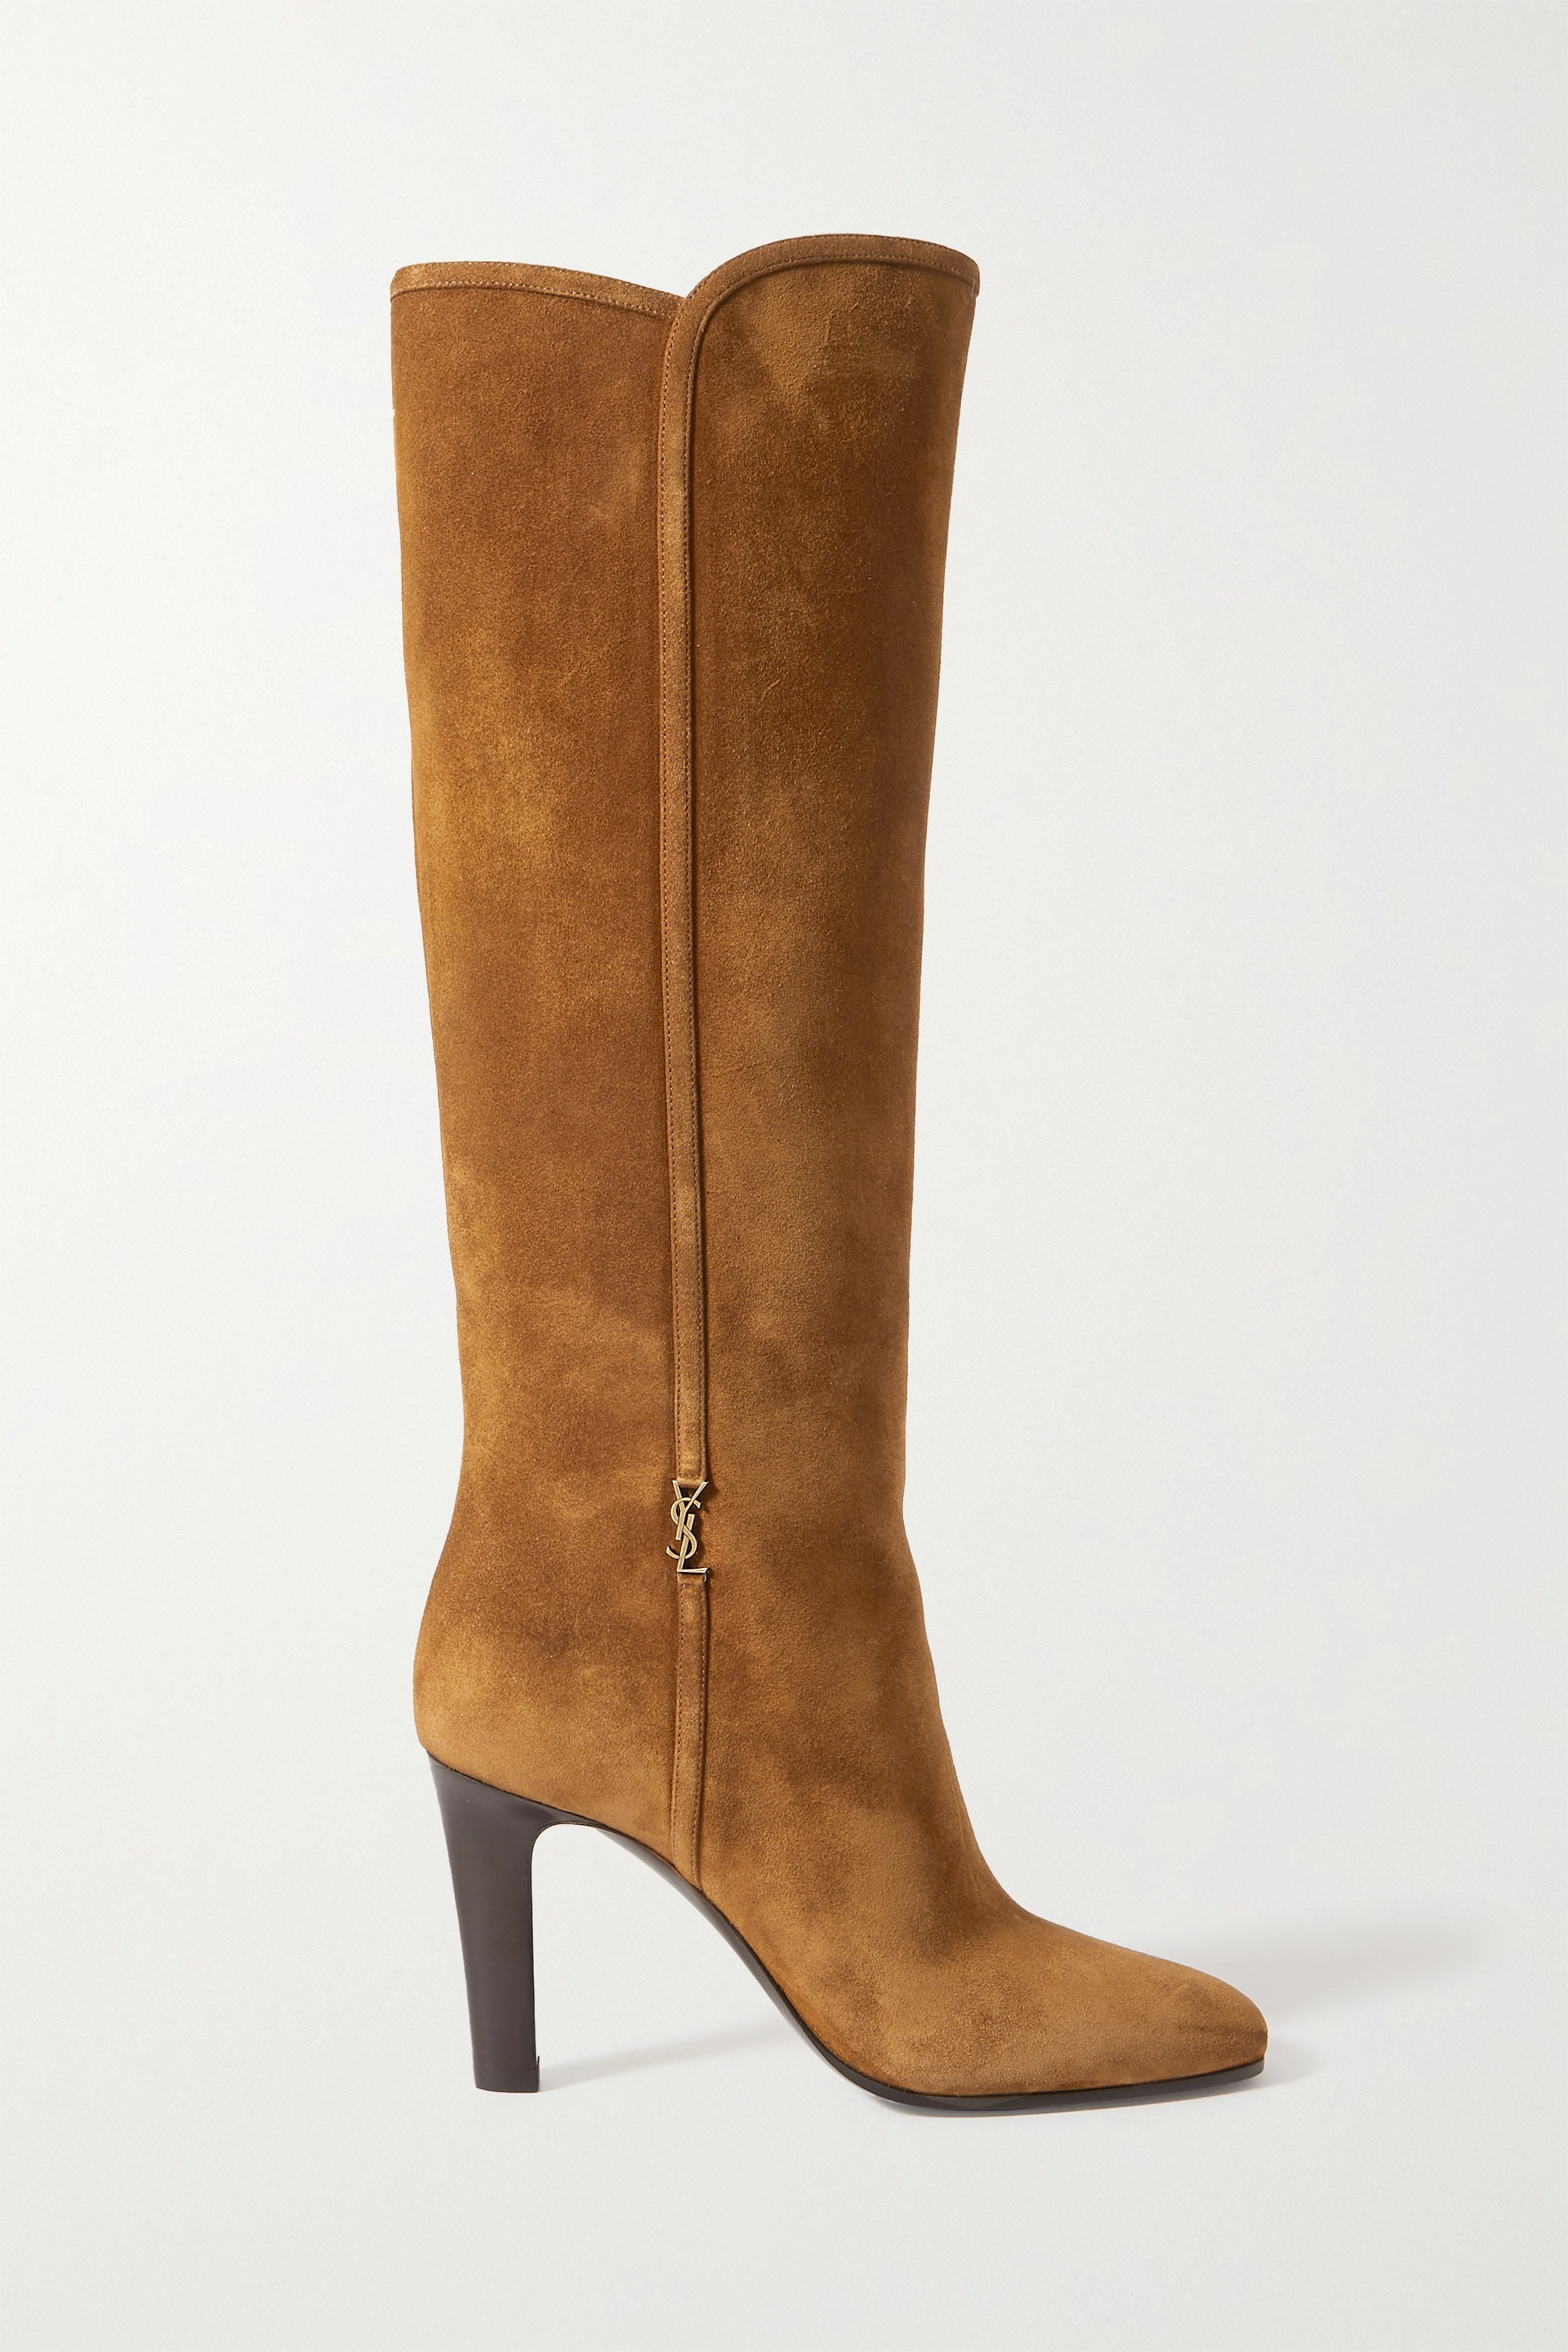 SAINT LAURENT - Jane logo-embellished suede knee boots